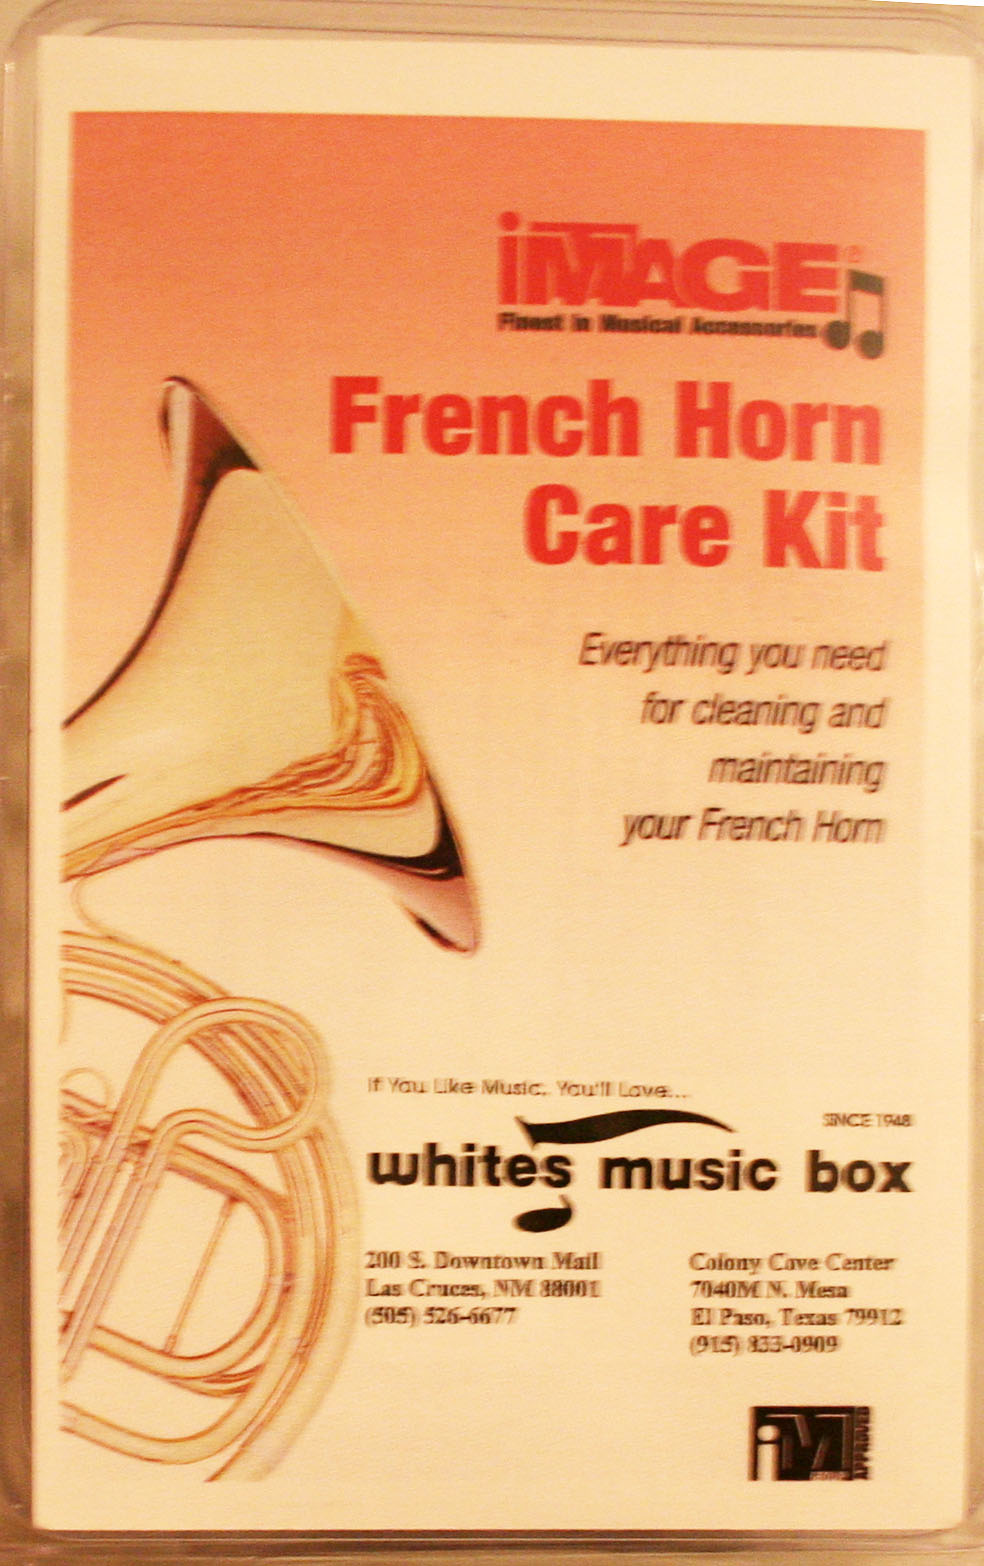 IMAGE FRENCH HORN CARE KIT (FHCK100)